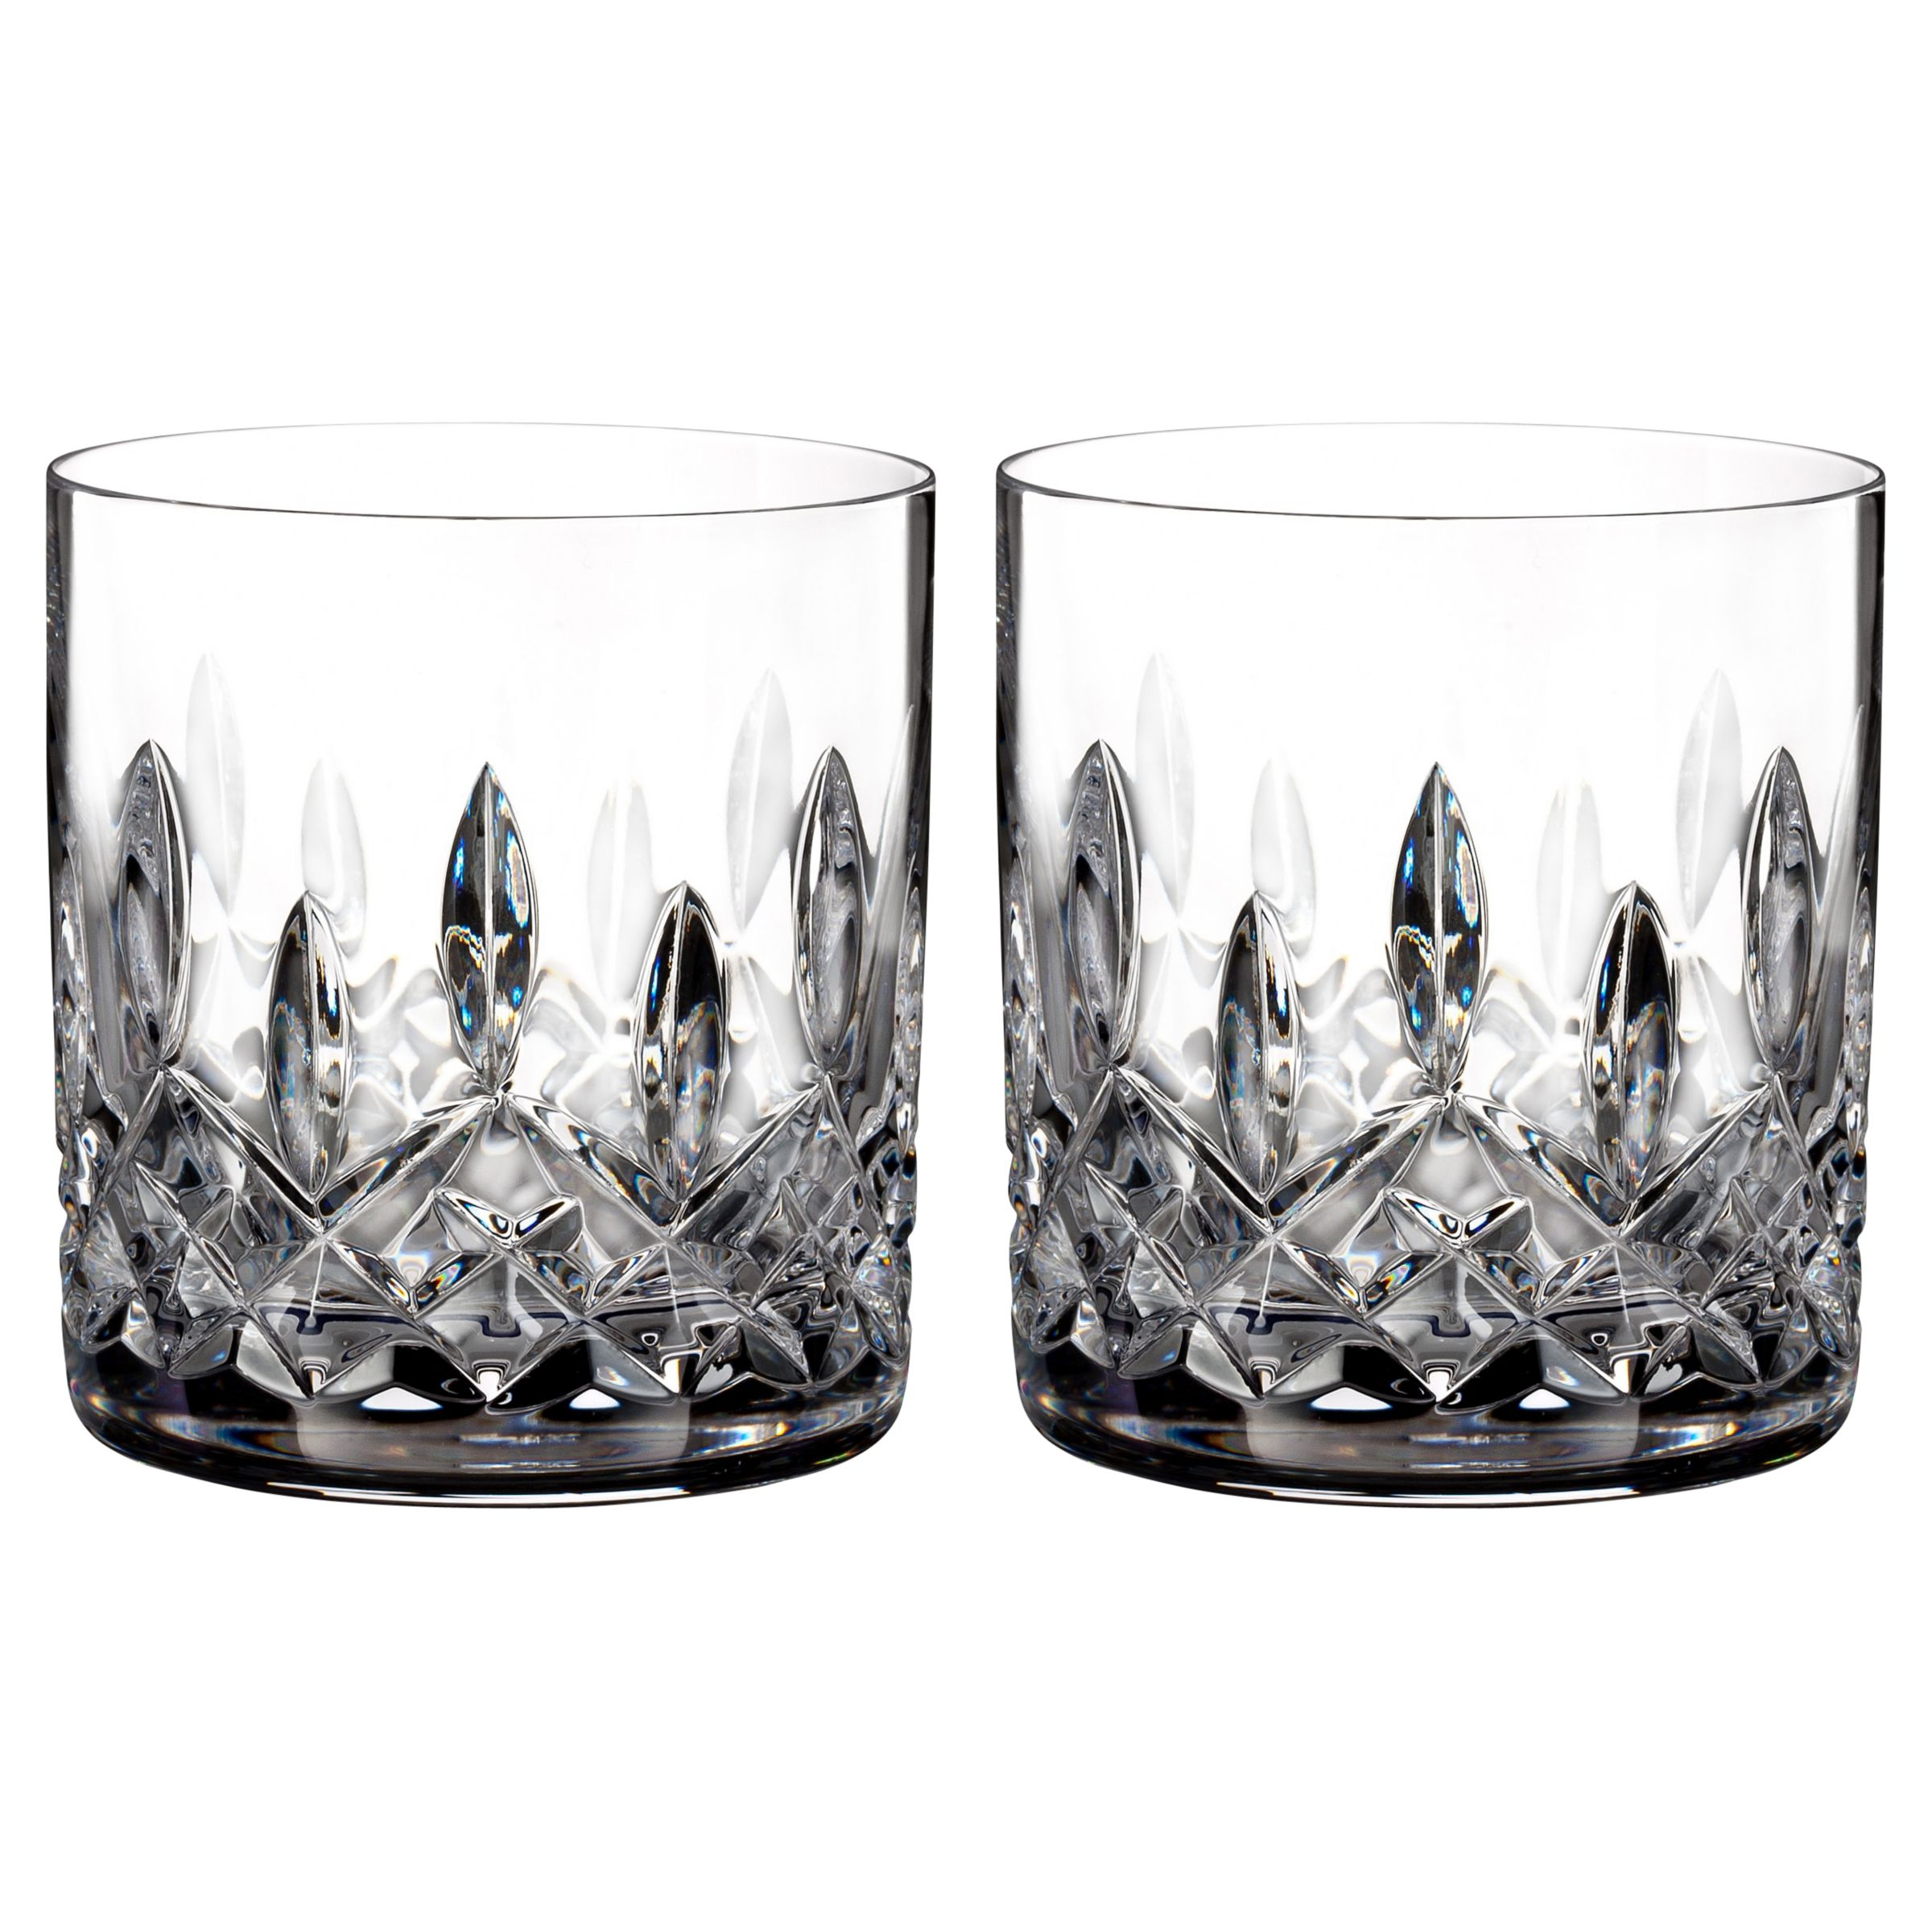 Waterford Waterford Lismore Connoisseur Straight Cut Lead Crystal Tumblers, 200ml, Set of 2